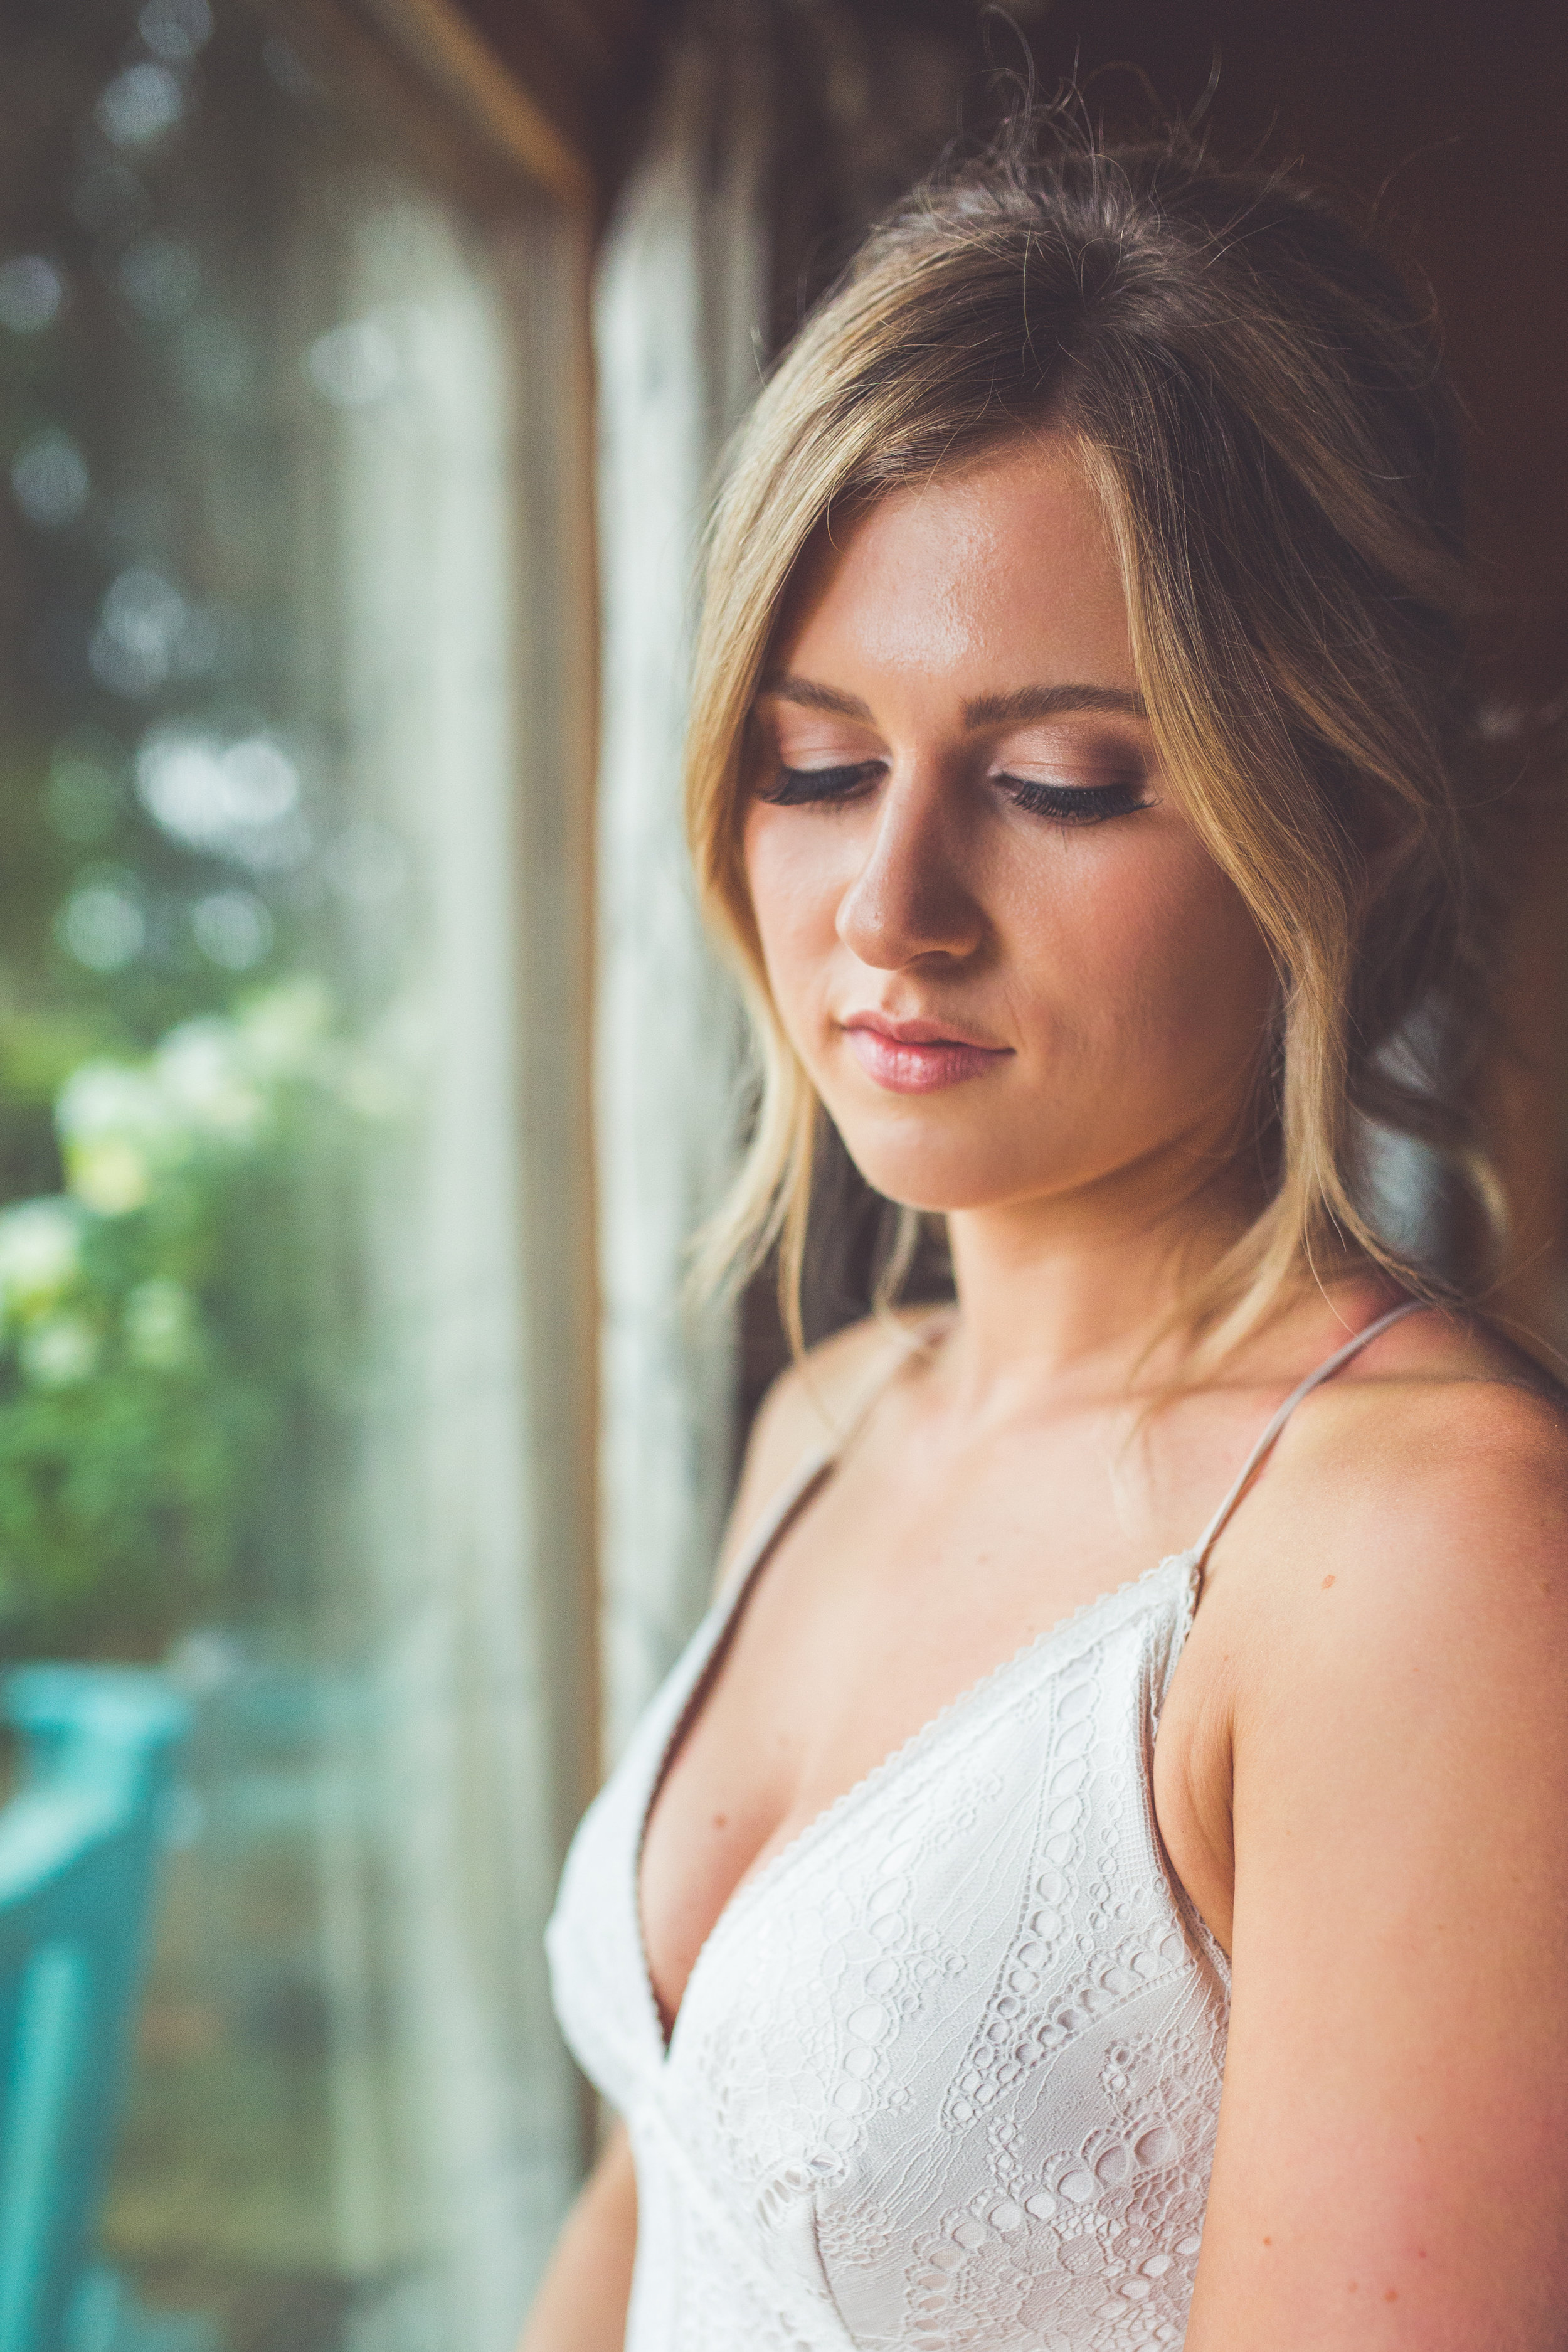 makeup artistry by Chelsea dawn of Qualicum Beach